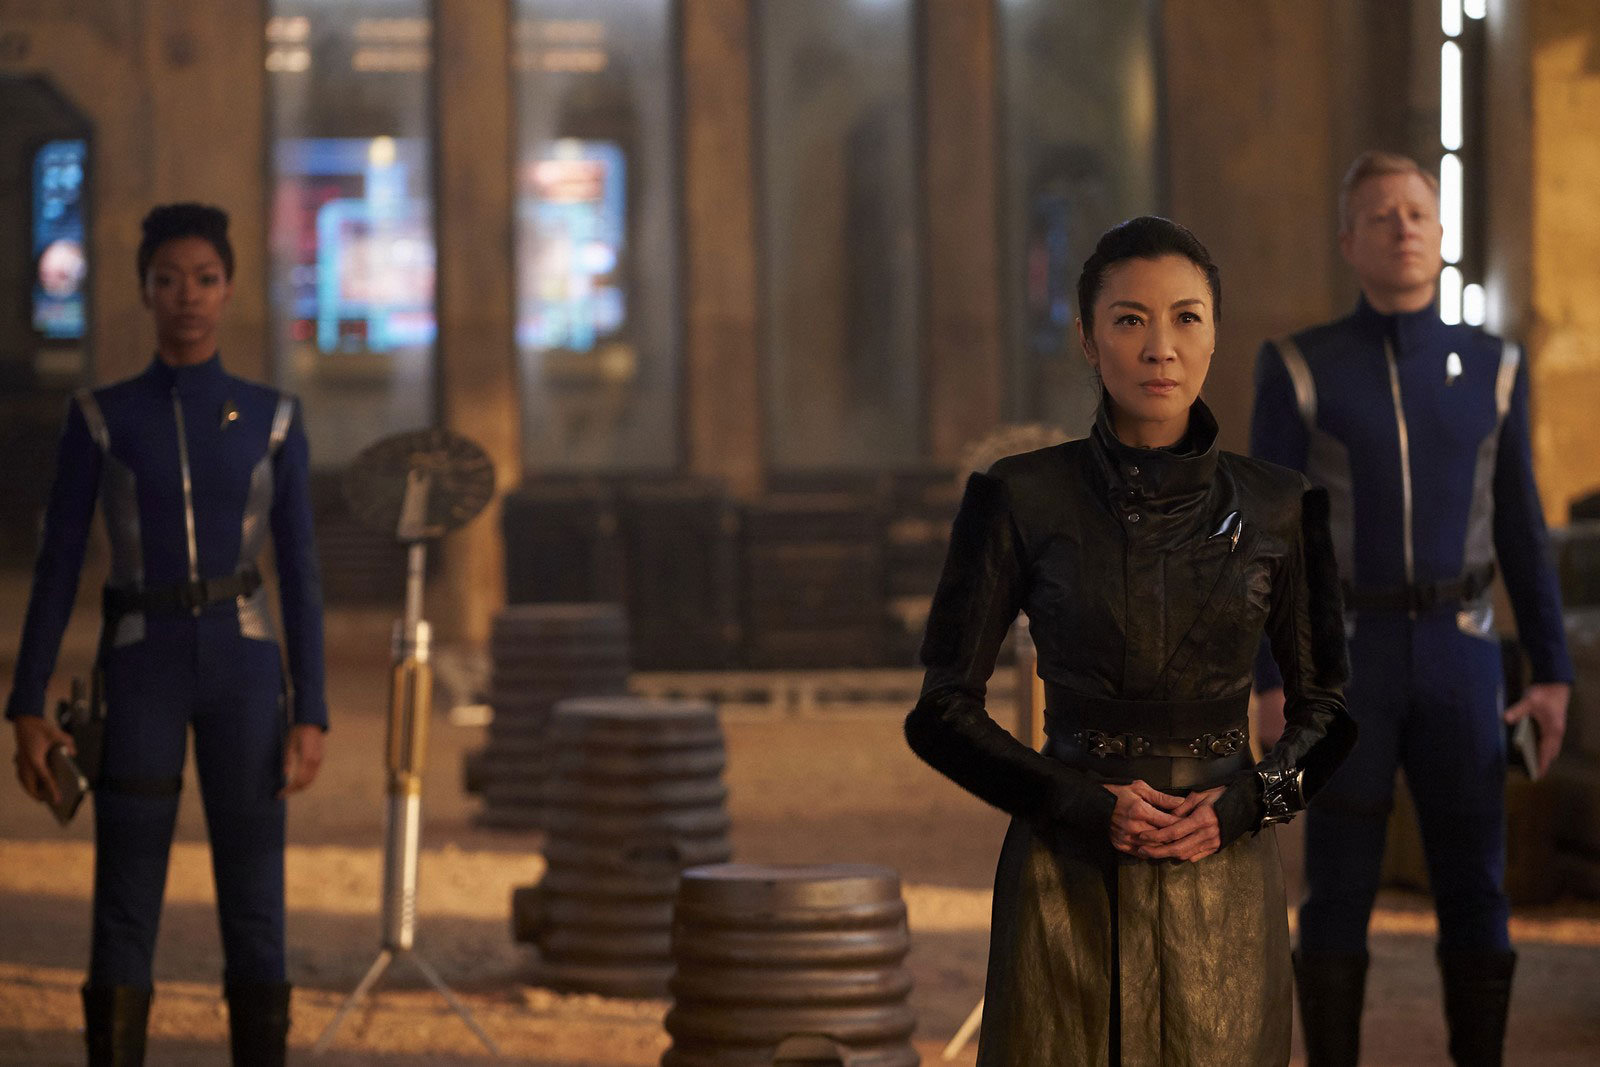 Sonequa Martin-Green as Michael Burnham, Michelle Yeoh as Philippa Georgiou and Anthony Rapp as Paul Stamets